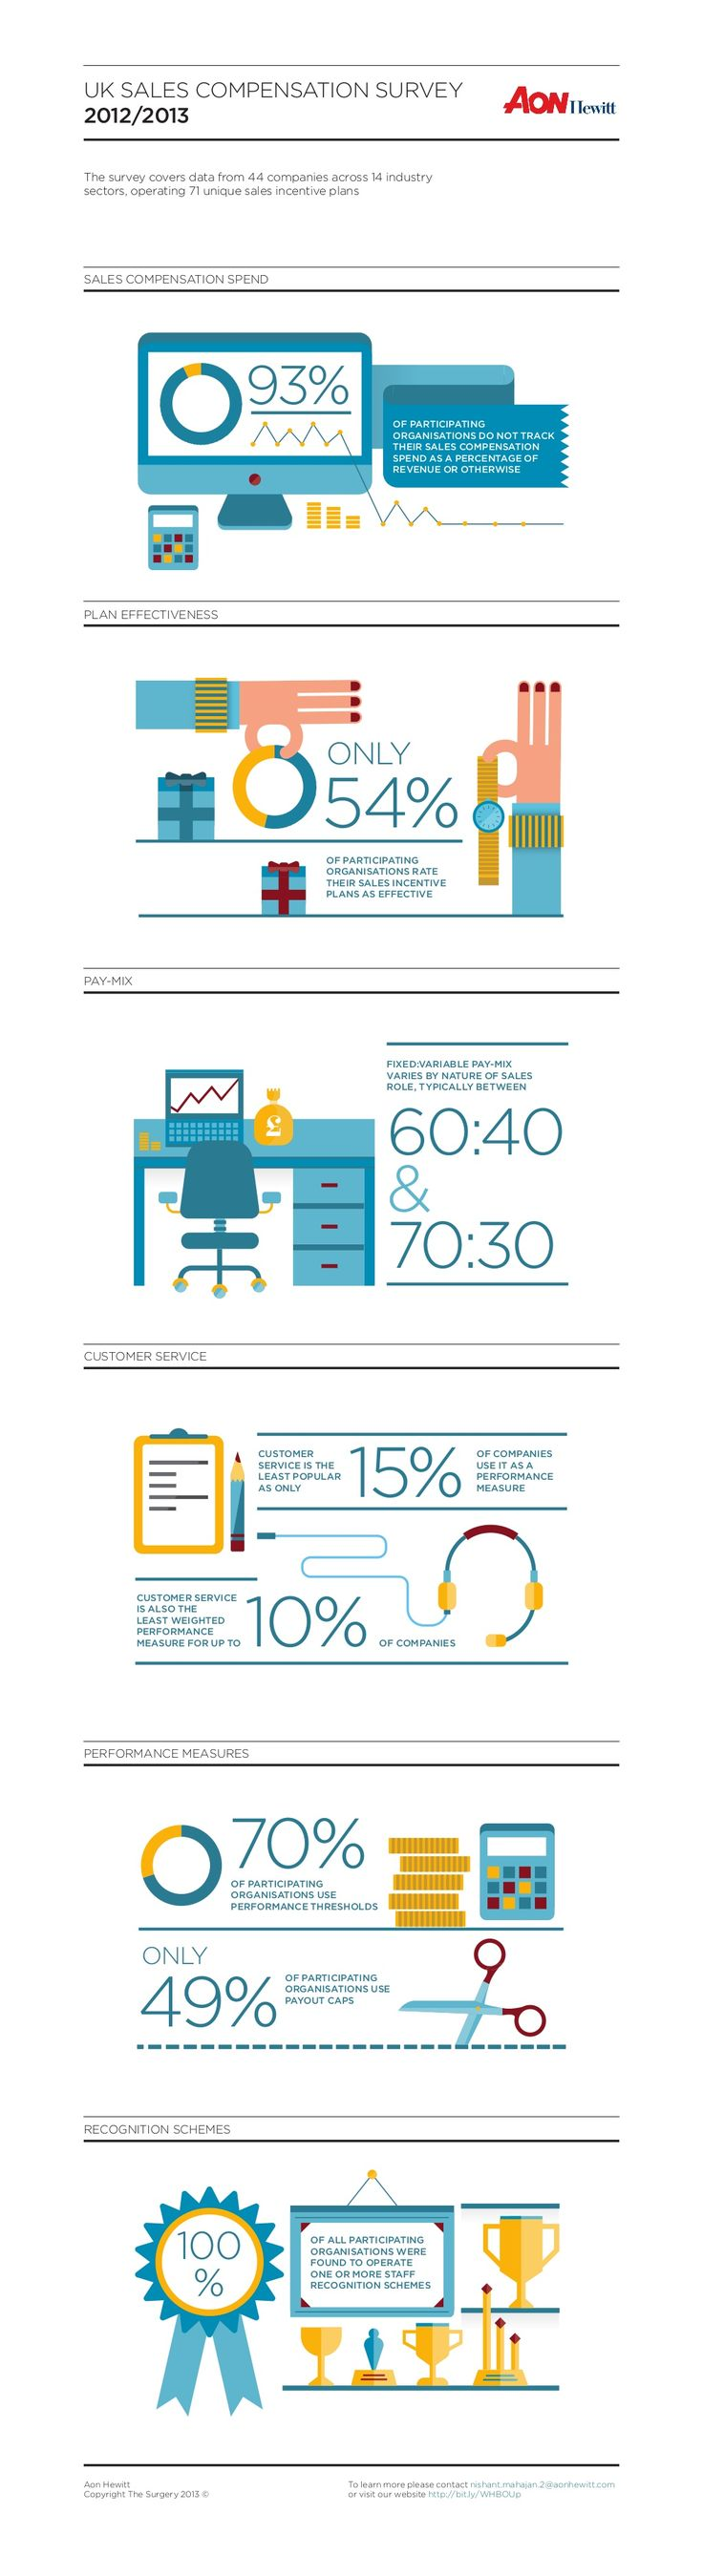 UK Sales Compensation - Aon Hewitt infographic